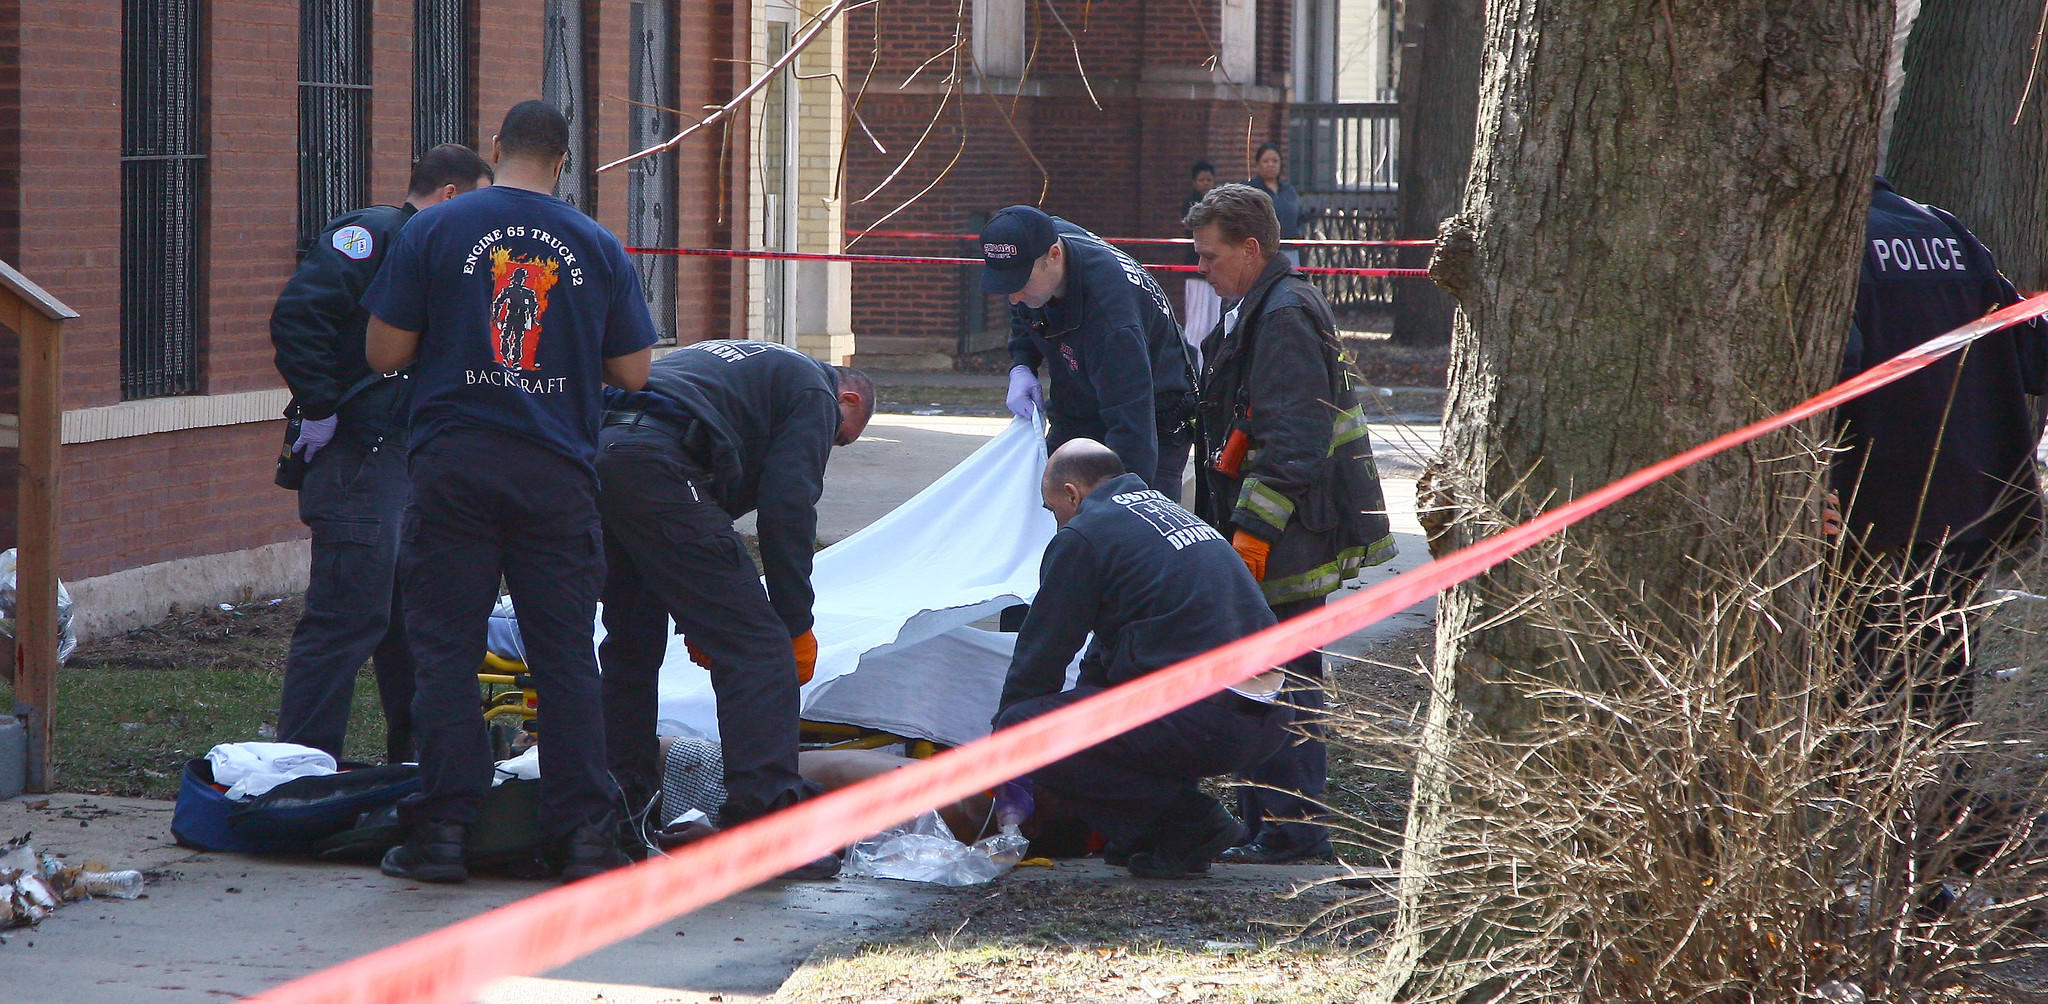 Emergency personnel cover a shooting victim at 69th and Elizabeth Street. The victim was pronounced dead but was later revived at a hospital.